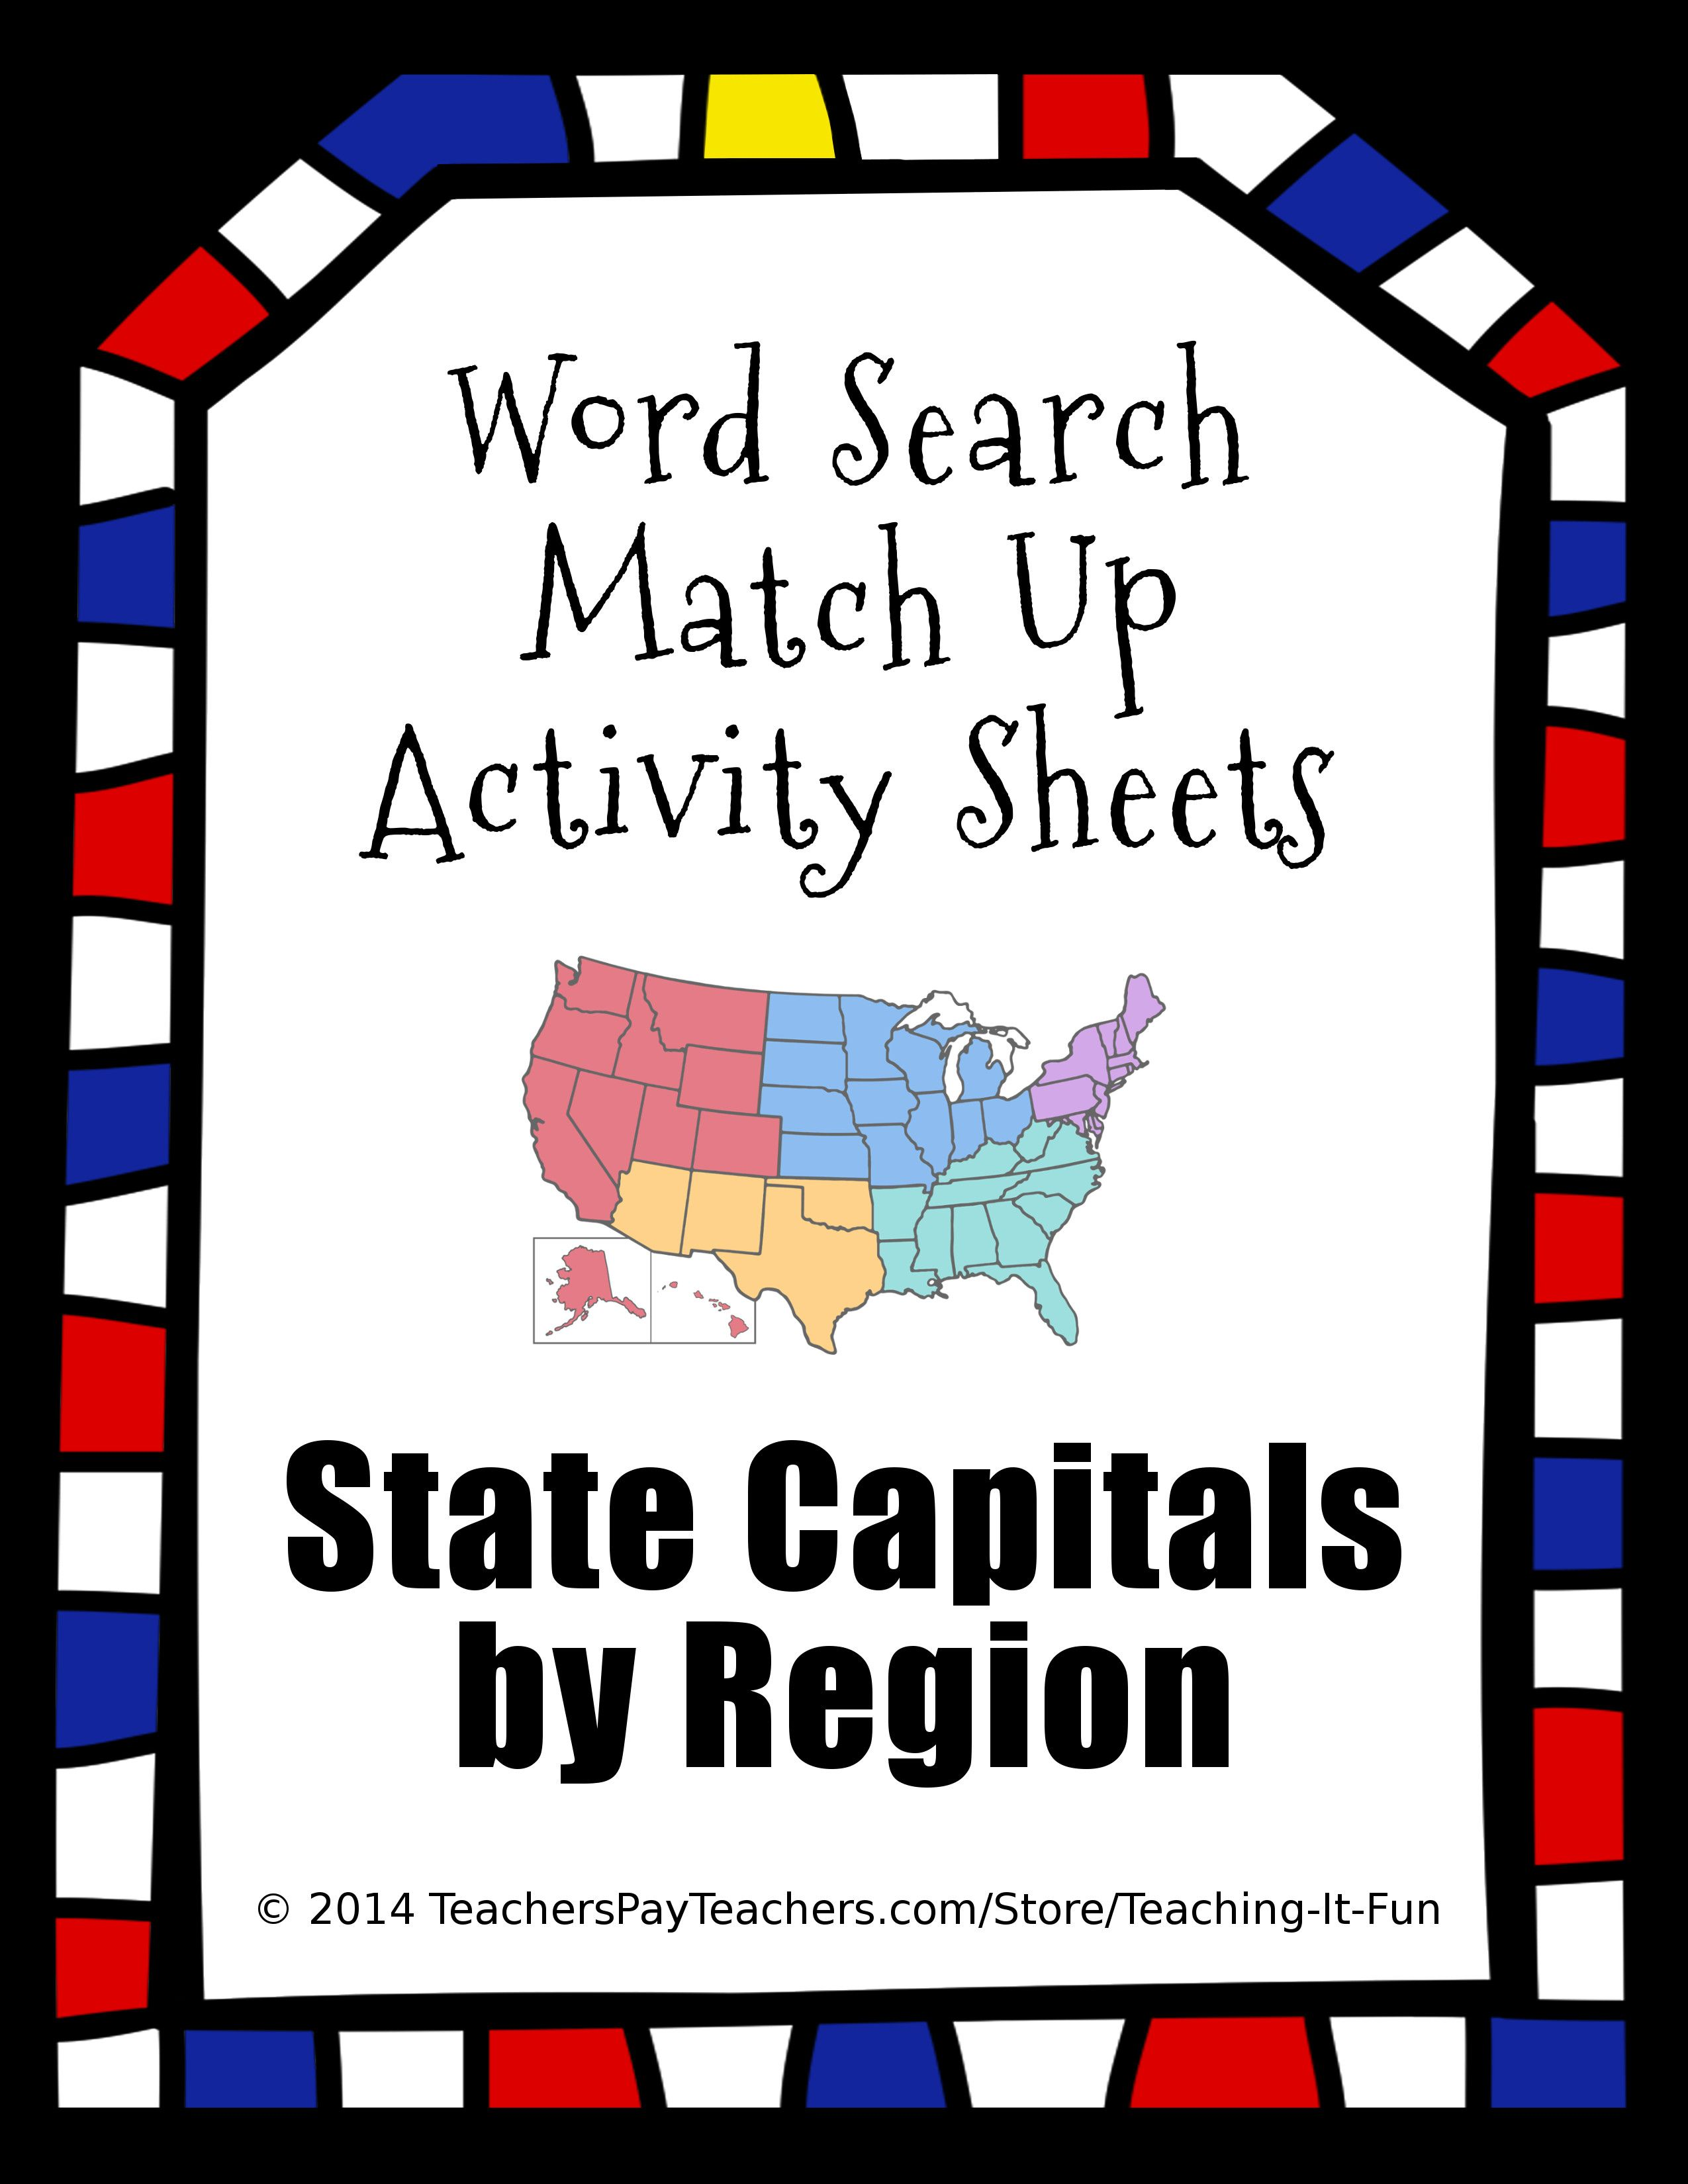 Word Search Match Up Activity Sheets State Capitals For